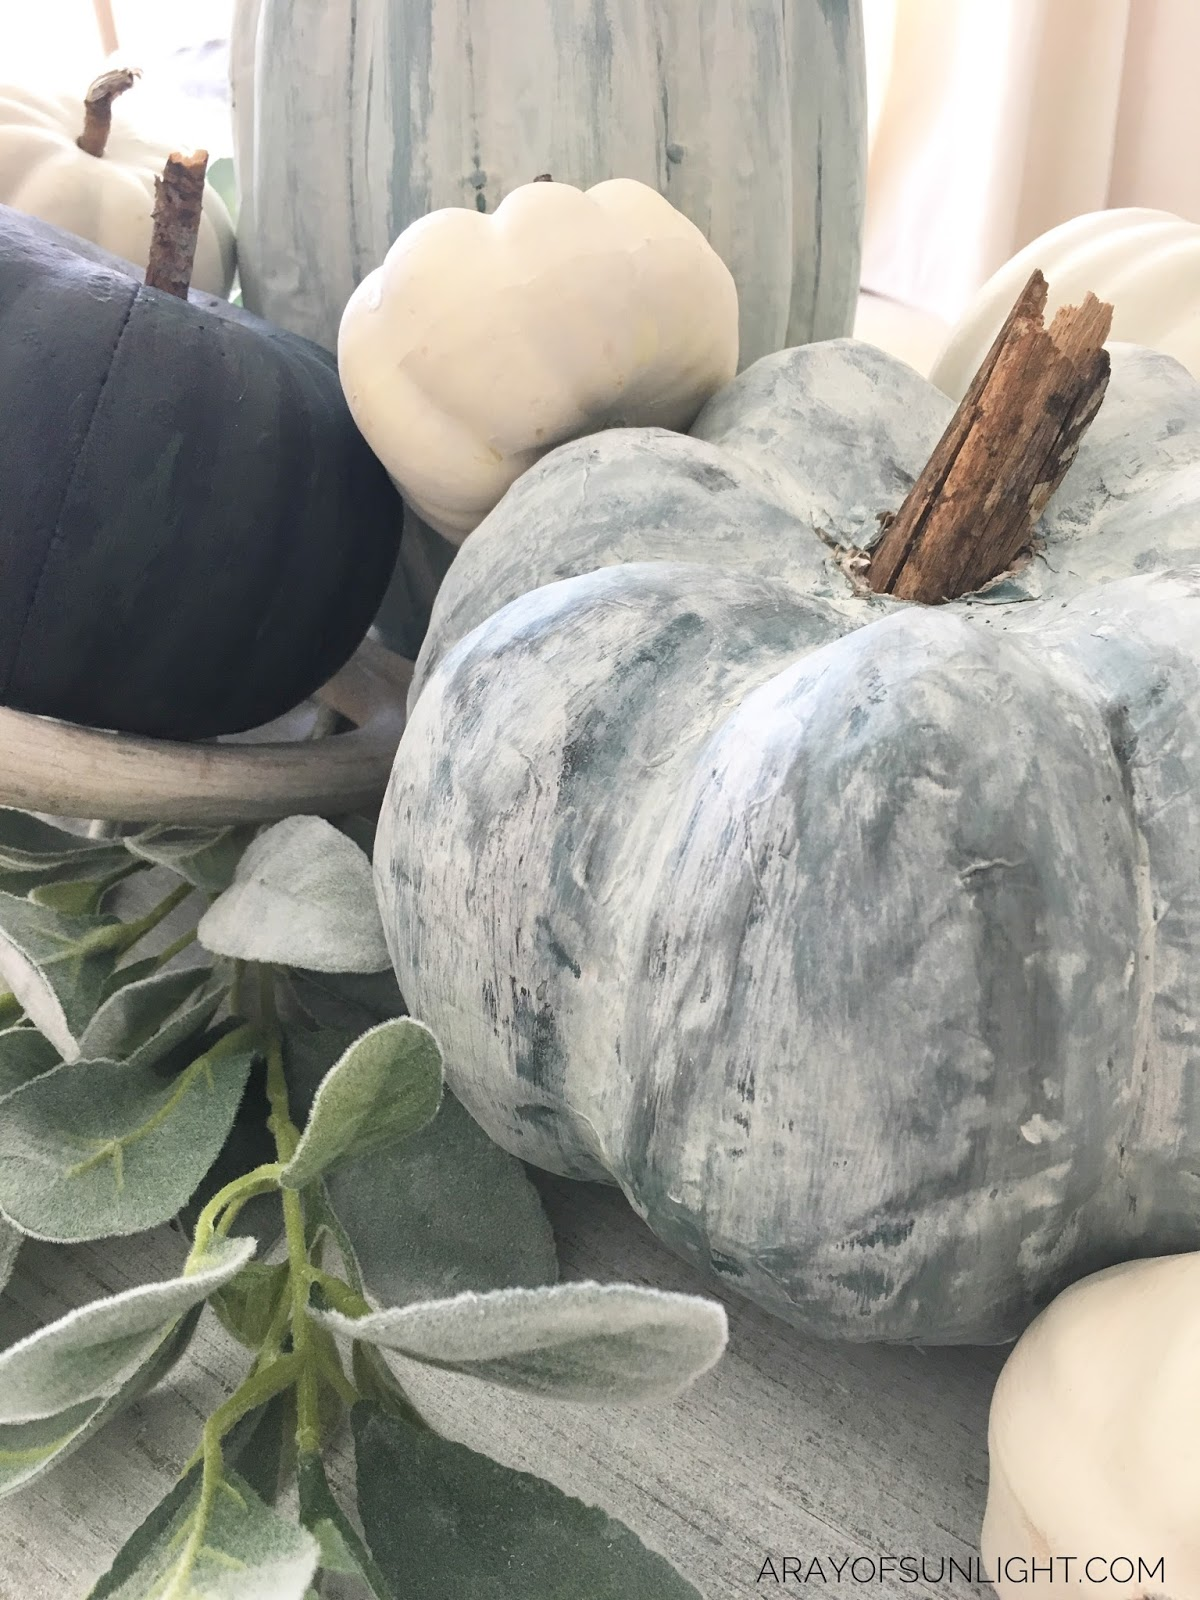 Learn how to make these painted fall pumpkins... the perfect project to get your fall decor going. We used Country Chic Paint to make these muted blue and green pumpkins and mixed them with lambs ear and antlers to go with our farmhouse decor. By A Ray of Sunlight